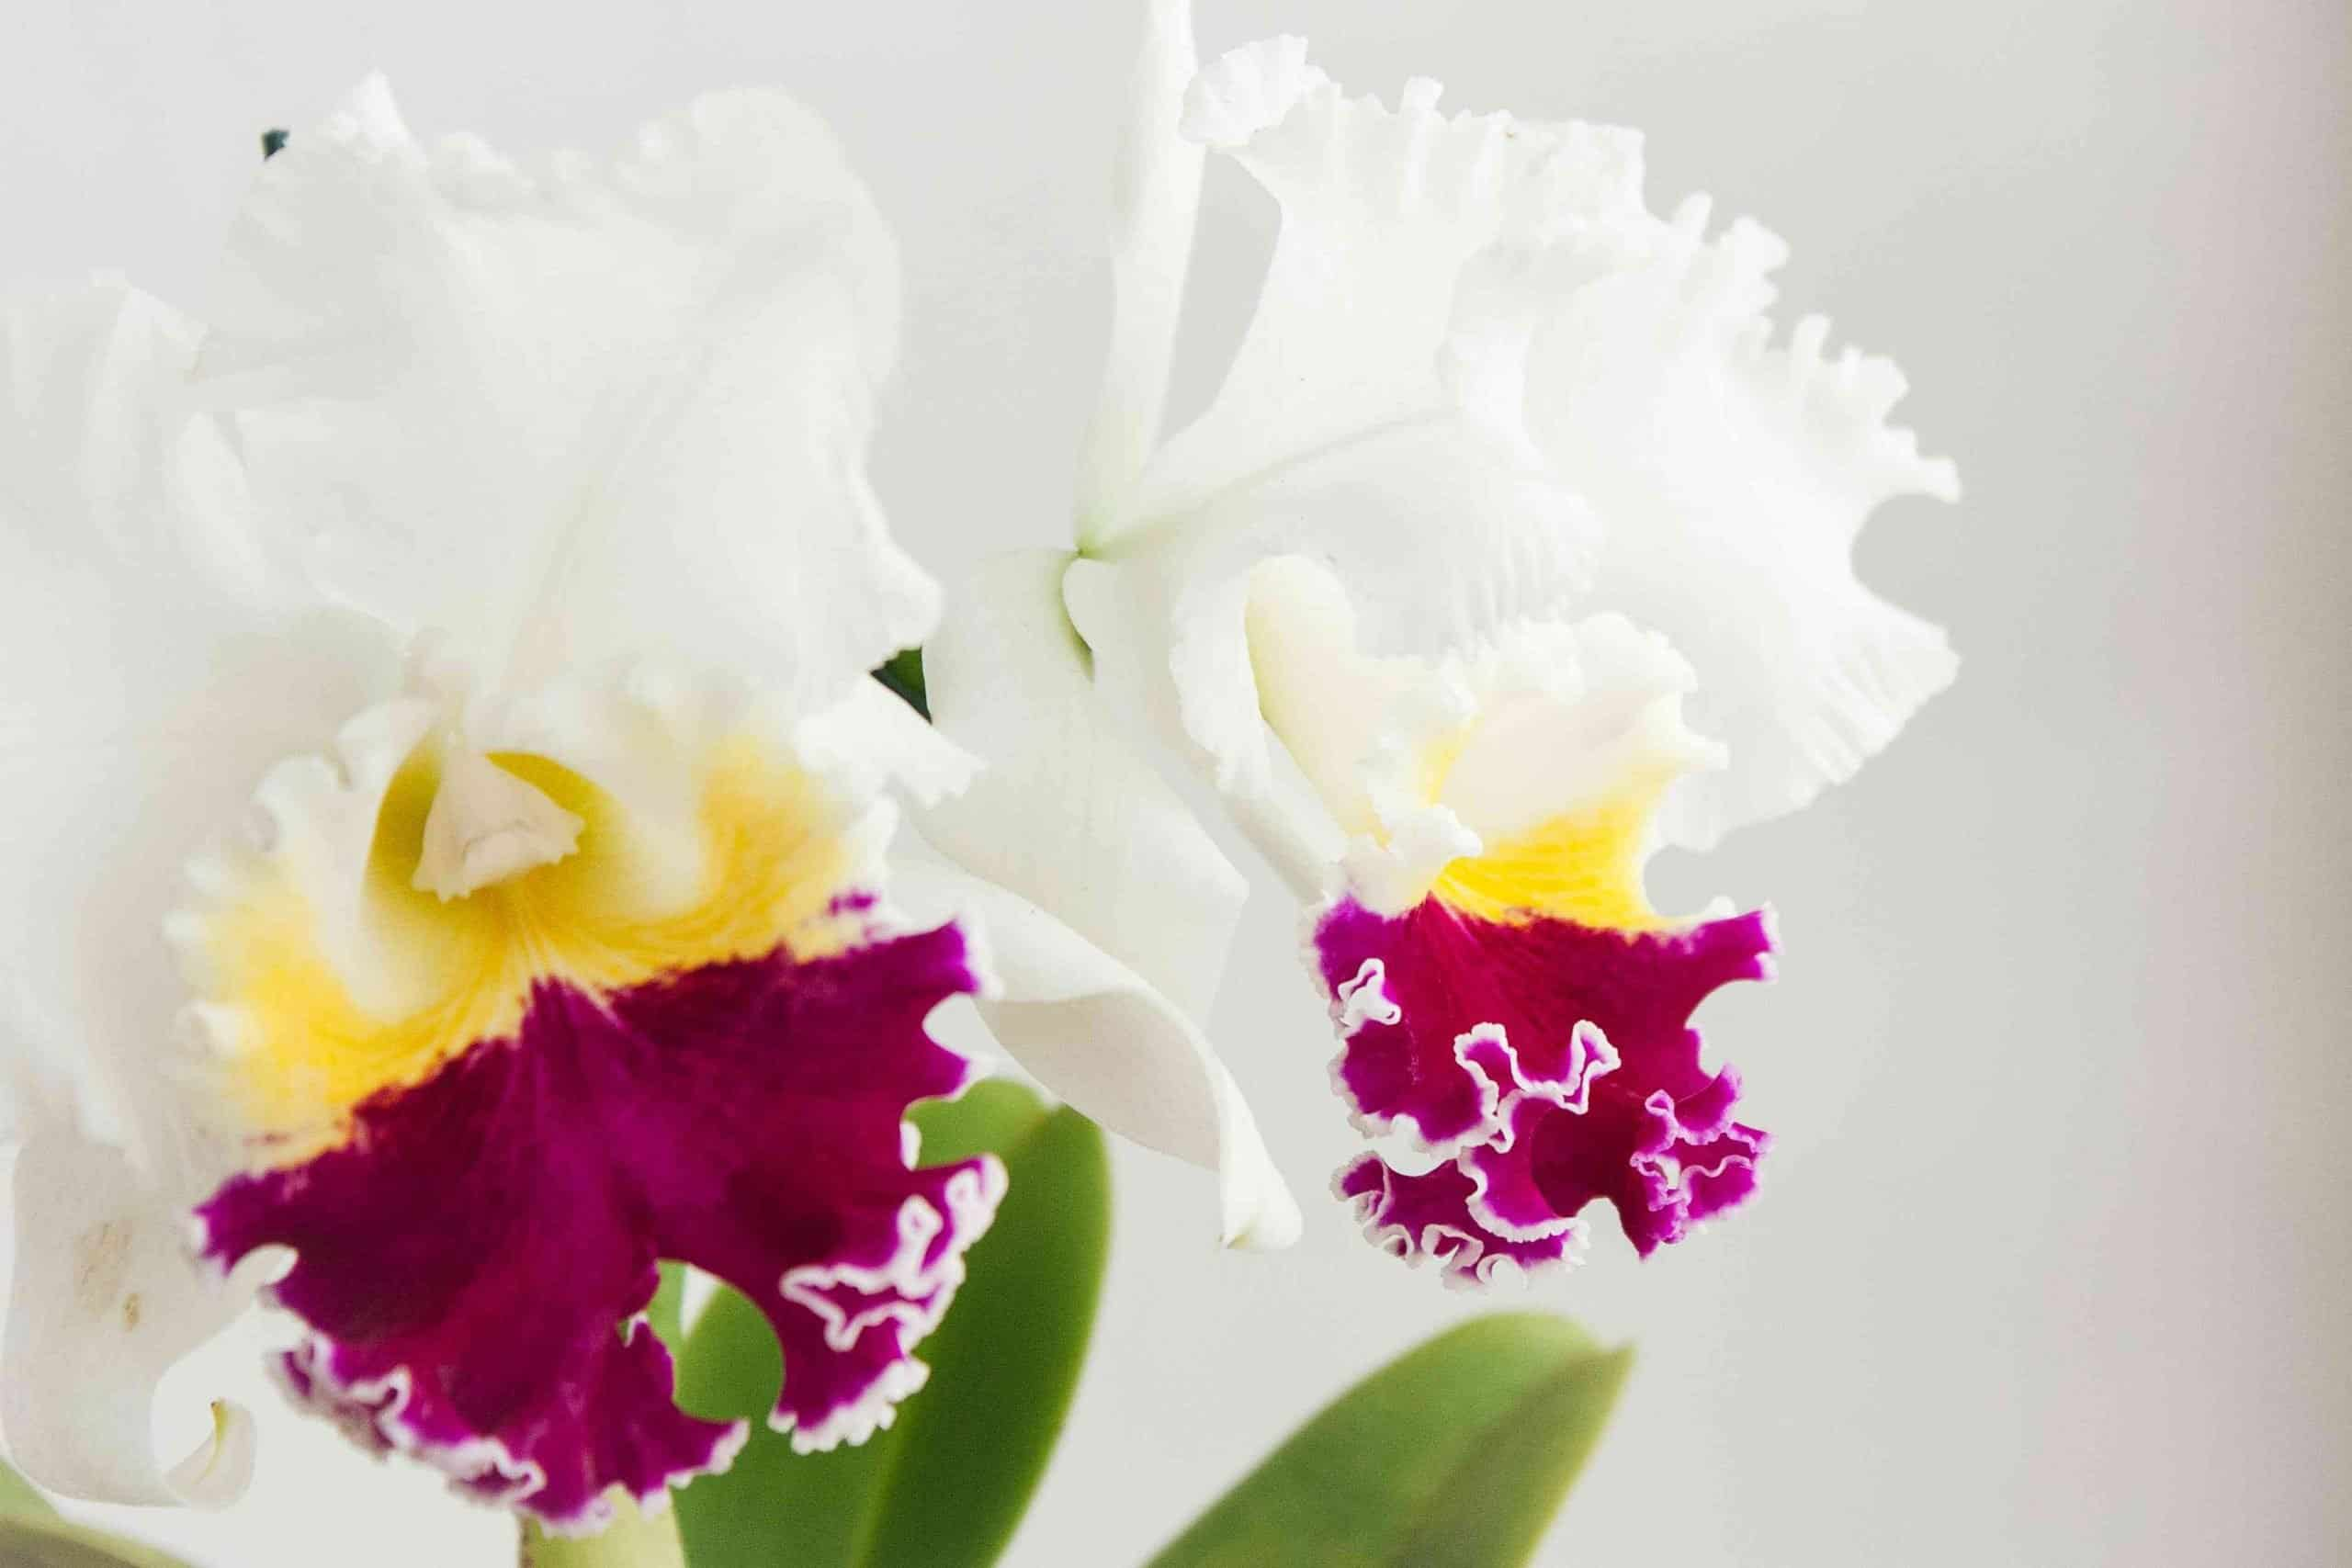 Cattleya Orchids Blooming Time